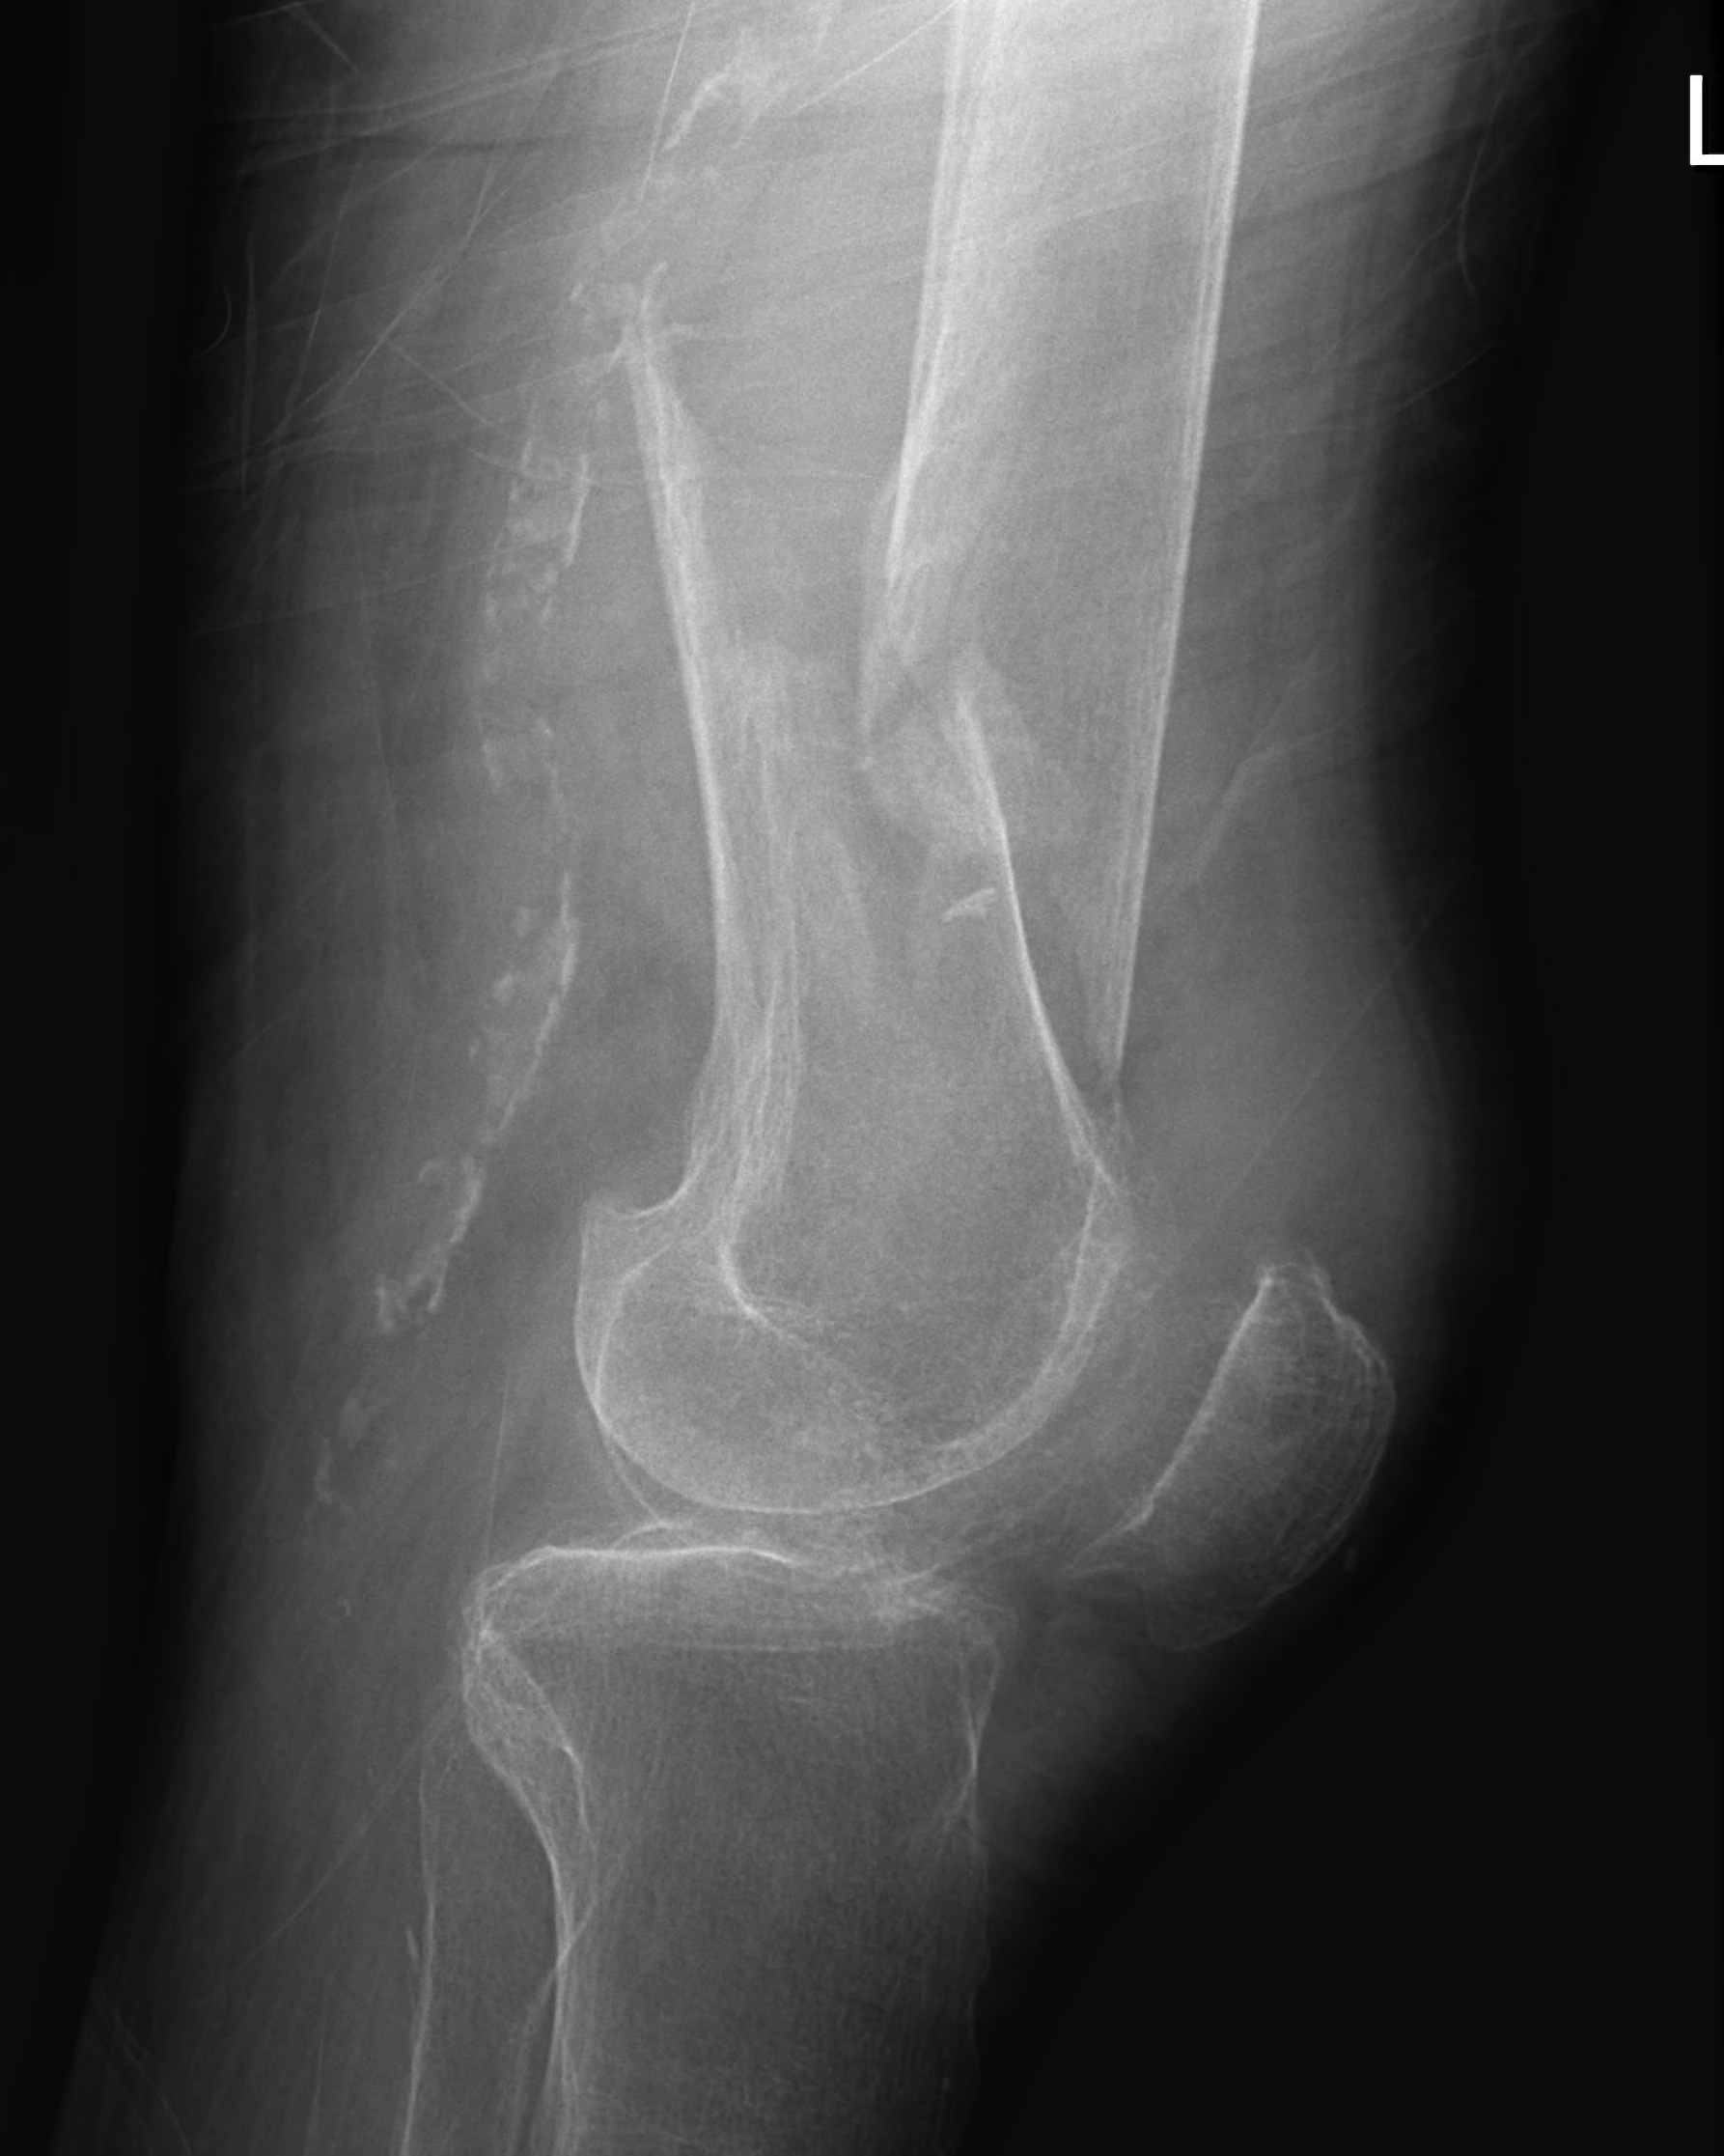 Distal Femur Fracture Lateral